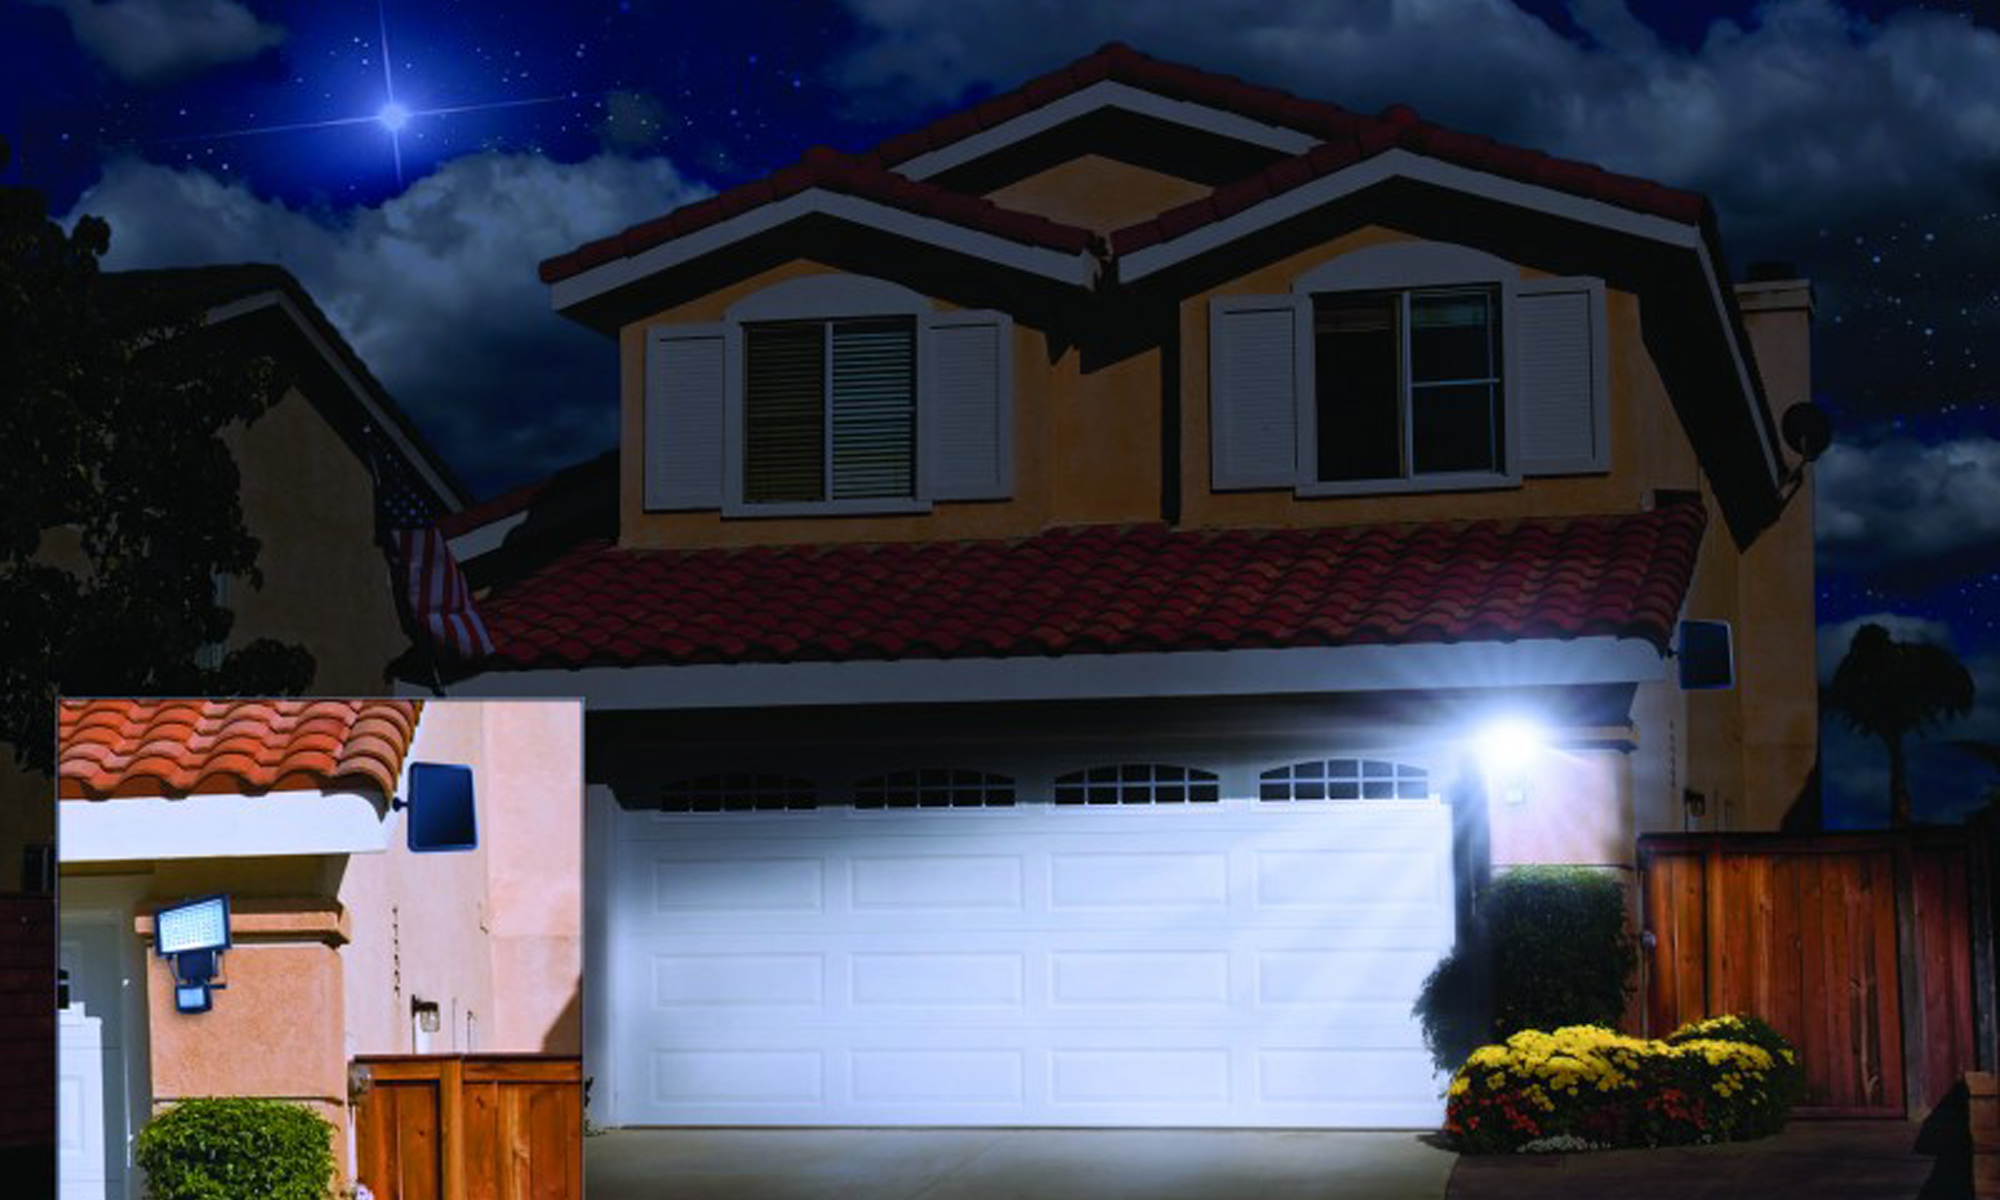 Security lighting installation jupiter fl by serenity lighting if you are looking to augment your security we have the expertise to install the right kind of lighting system to fit your needs aloadofball Images